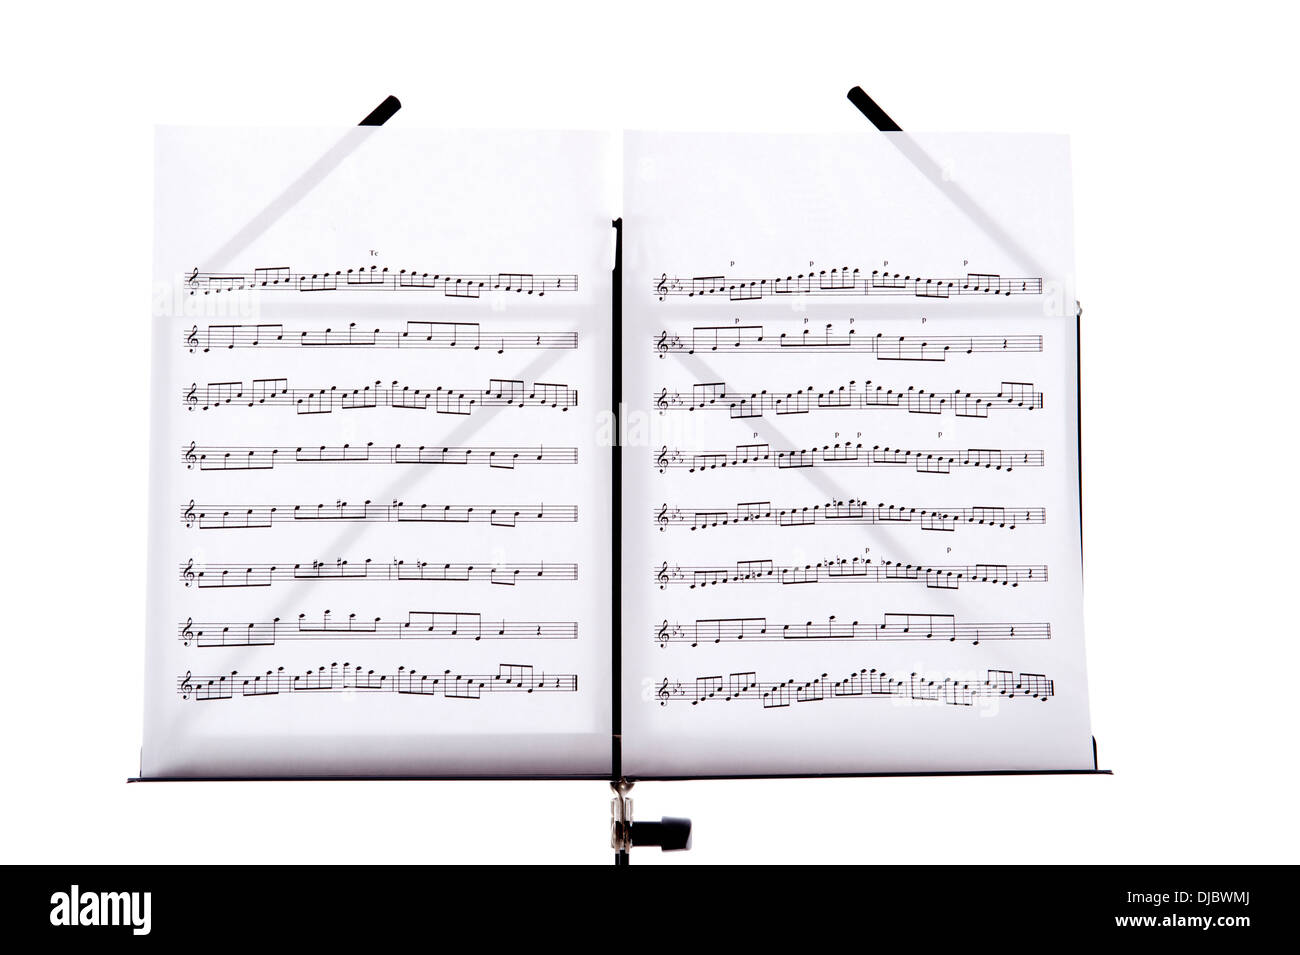 Melody sheets on a music sheet stand isolated in white - Stock Image